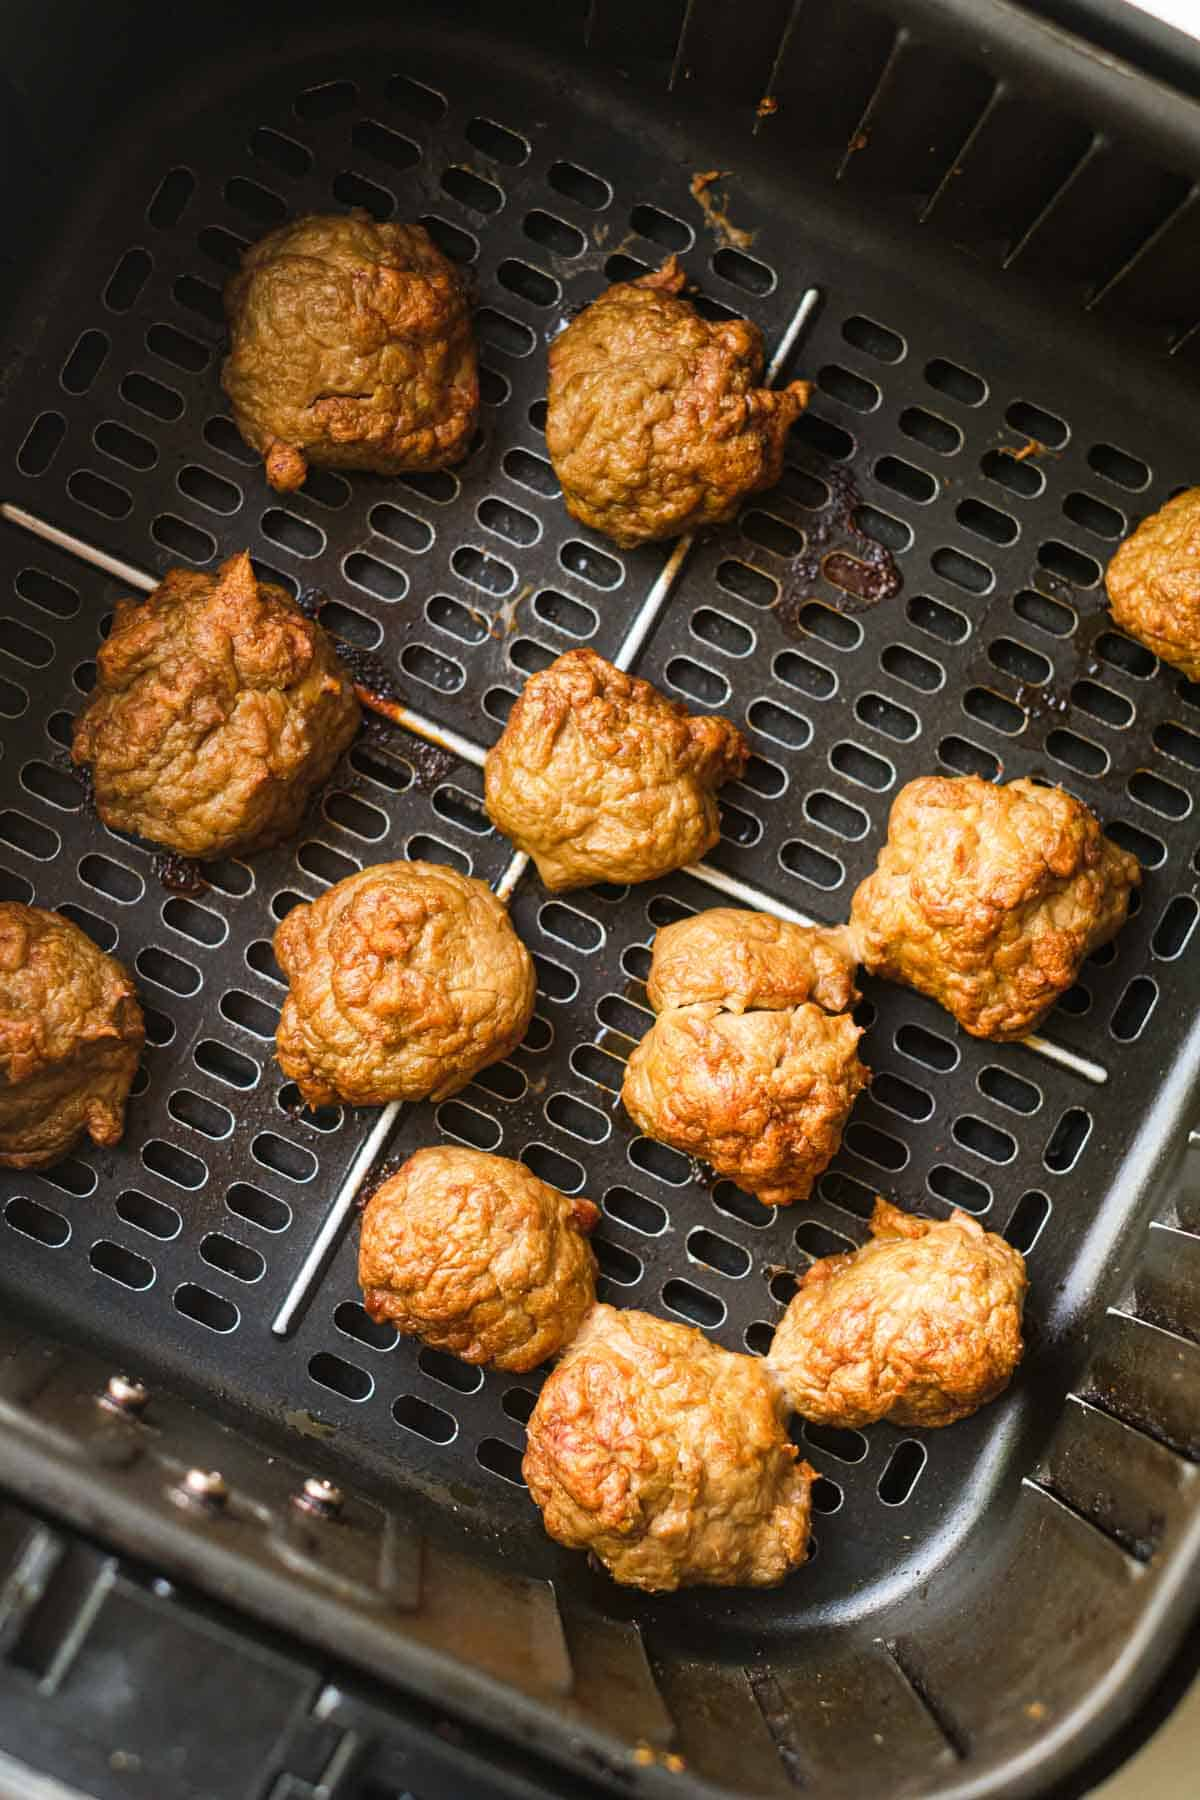 close up view of the cooked buffalo chicken meatballs inside the air fryer basket